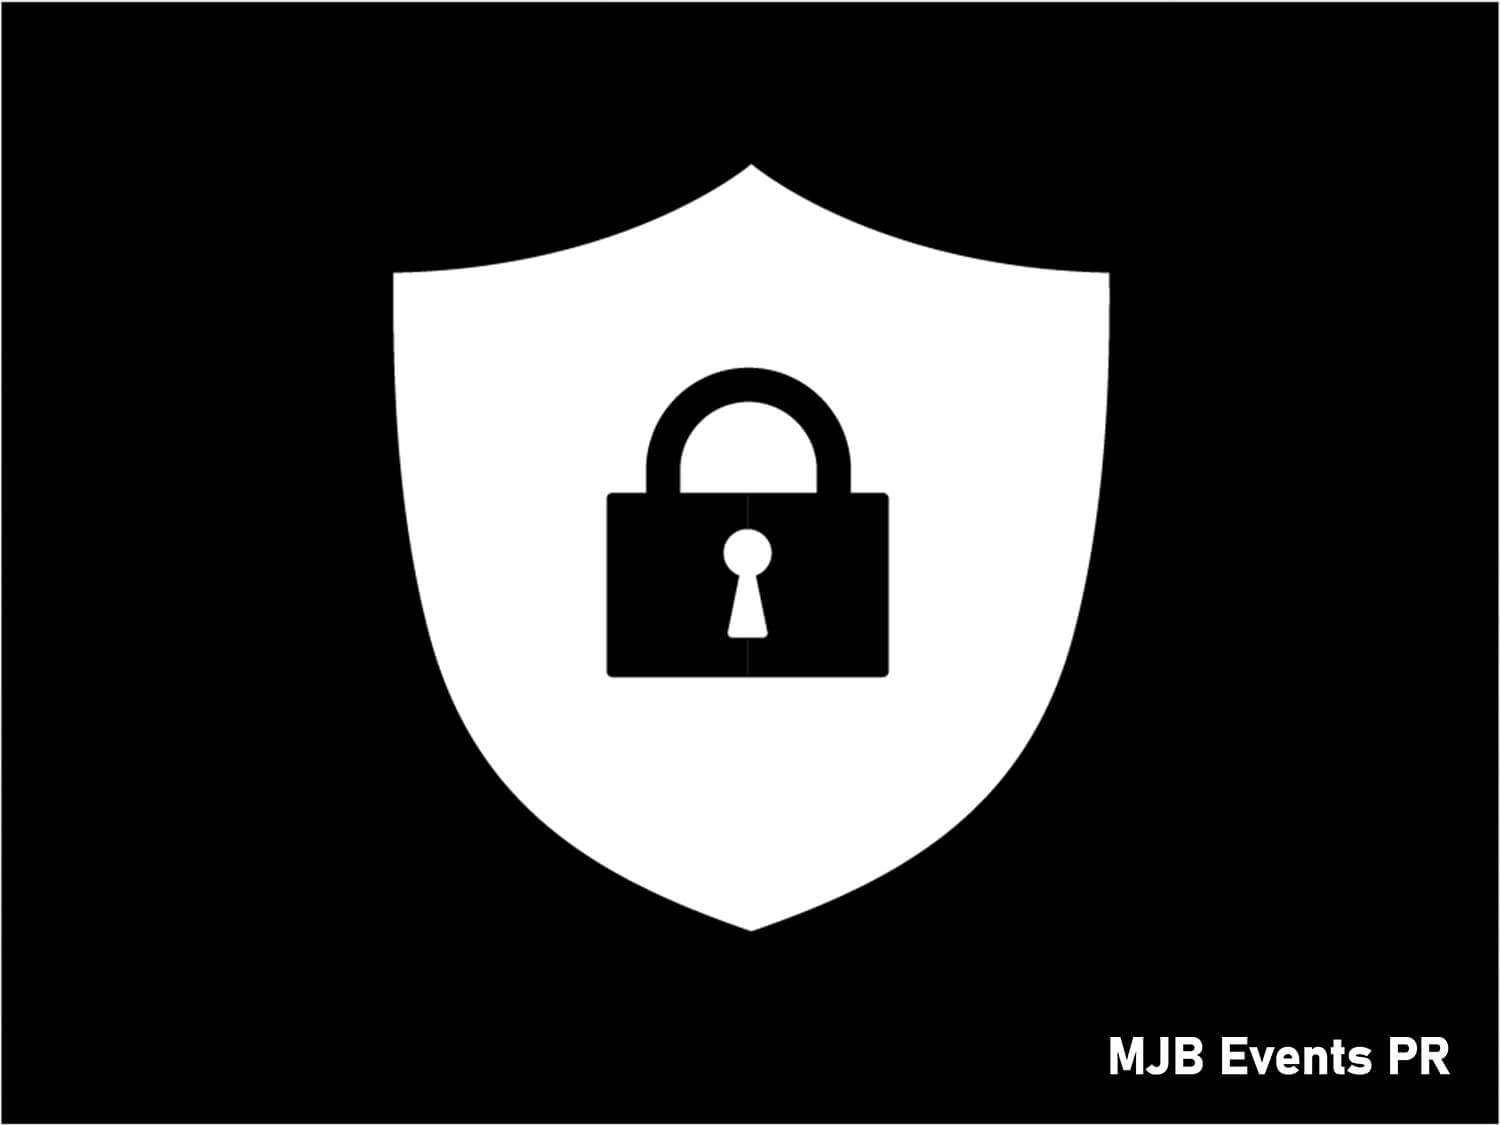 Security headers for your website by MJB Events PR